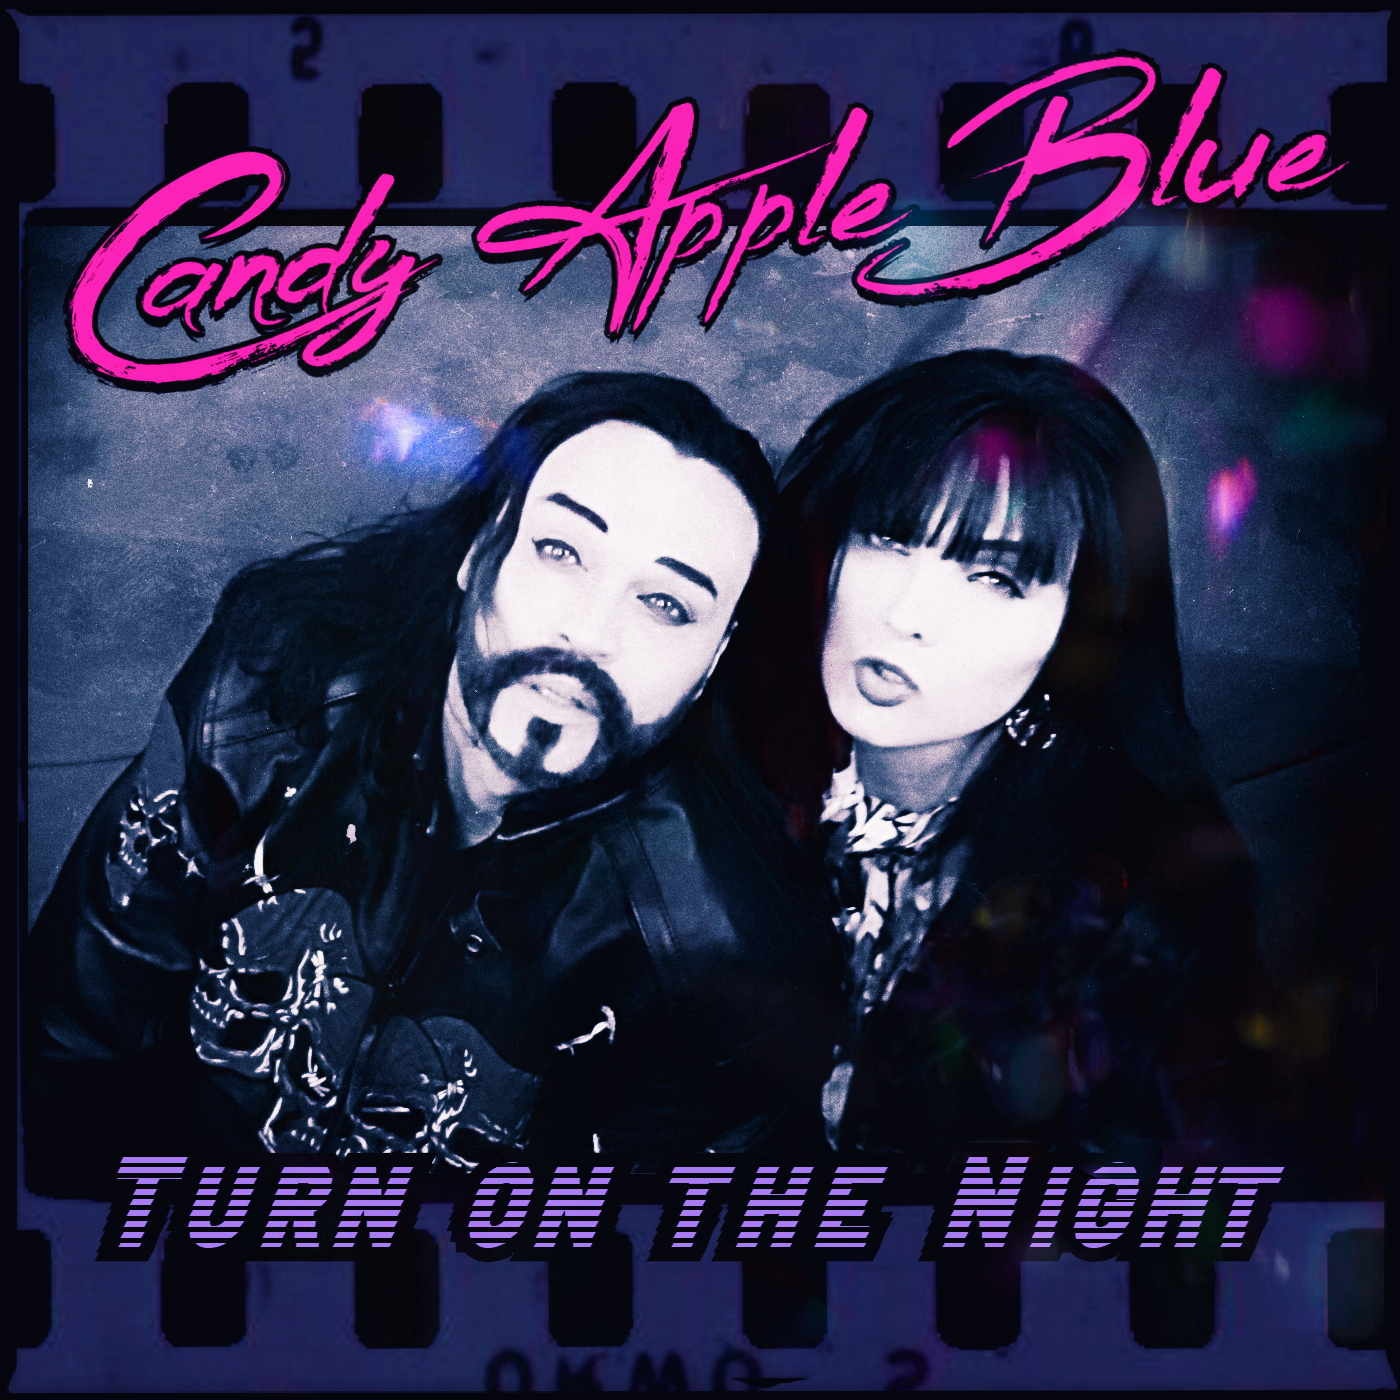 Candy Apple Blue released 90s Eurodance inspired track entitled Turn On The Night